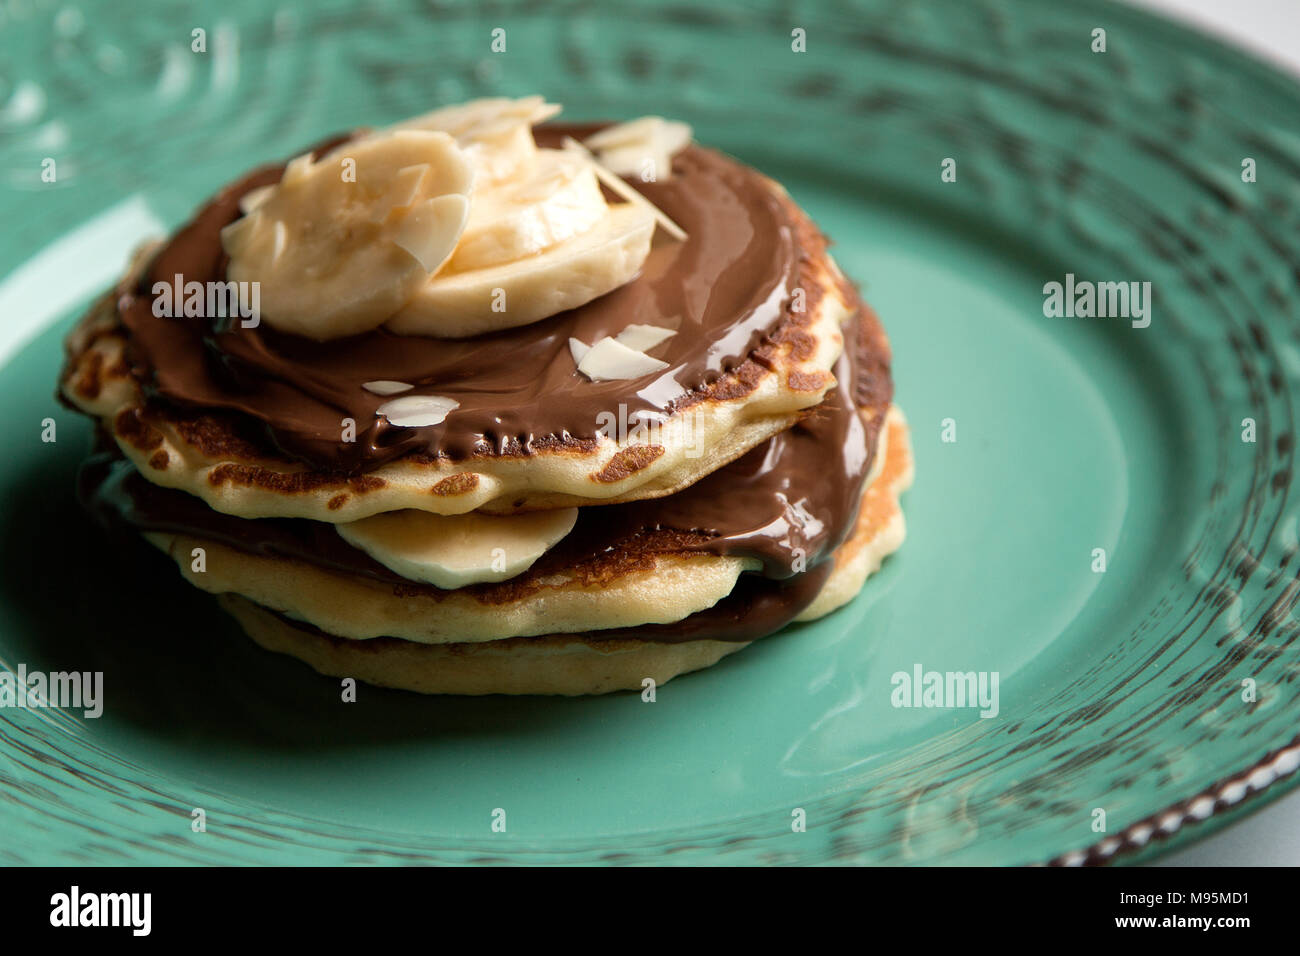 American pancakes with chocolate and banana on a green rustic plate Stock Photo